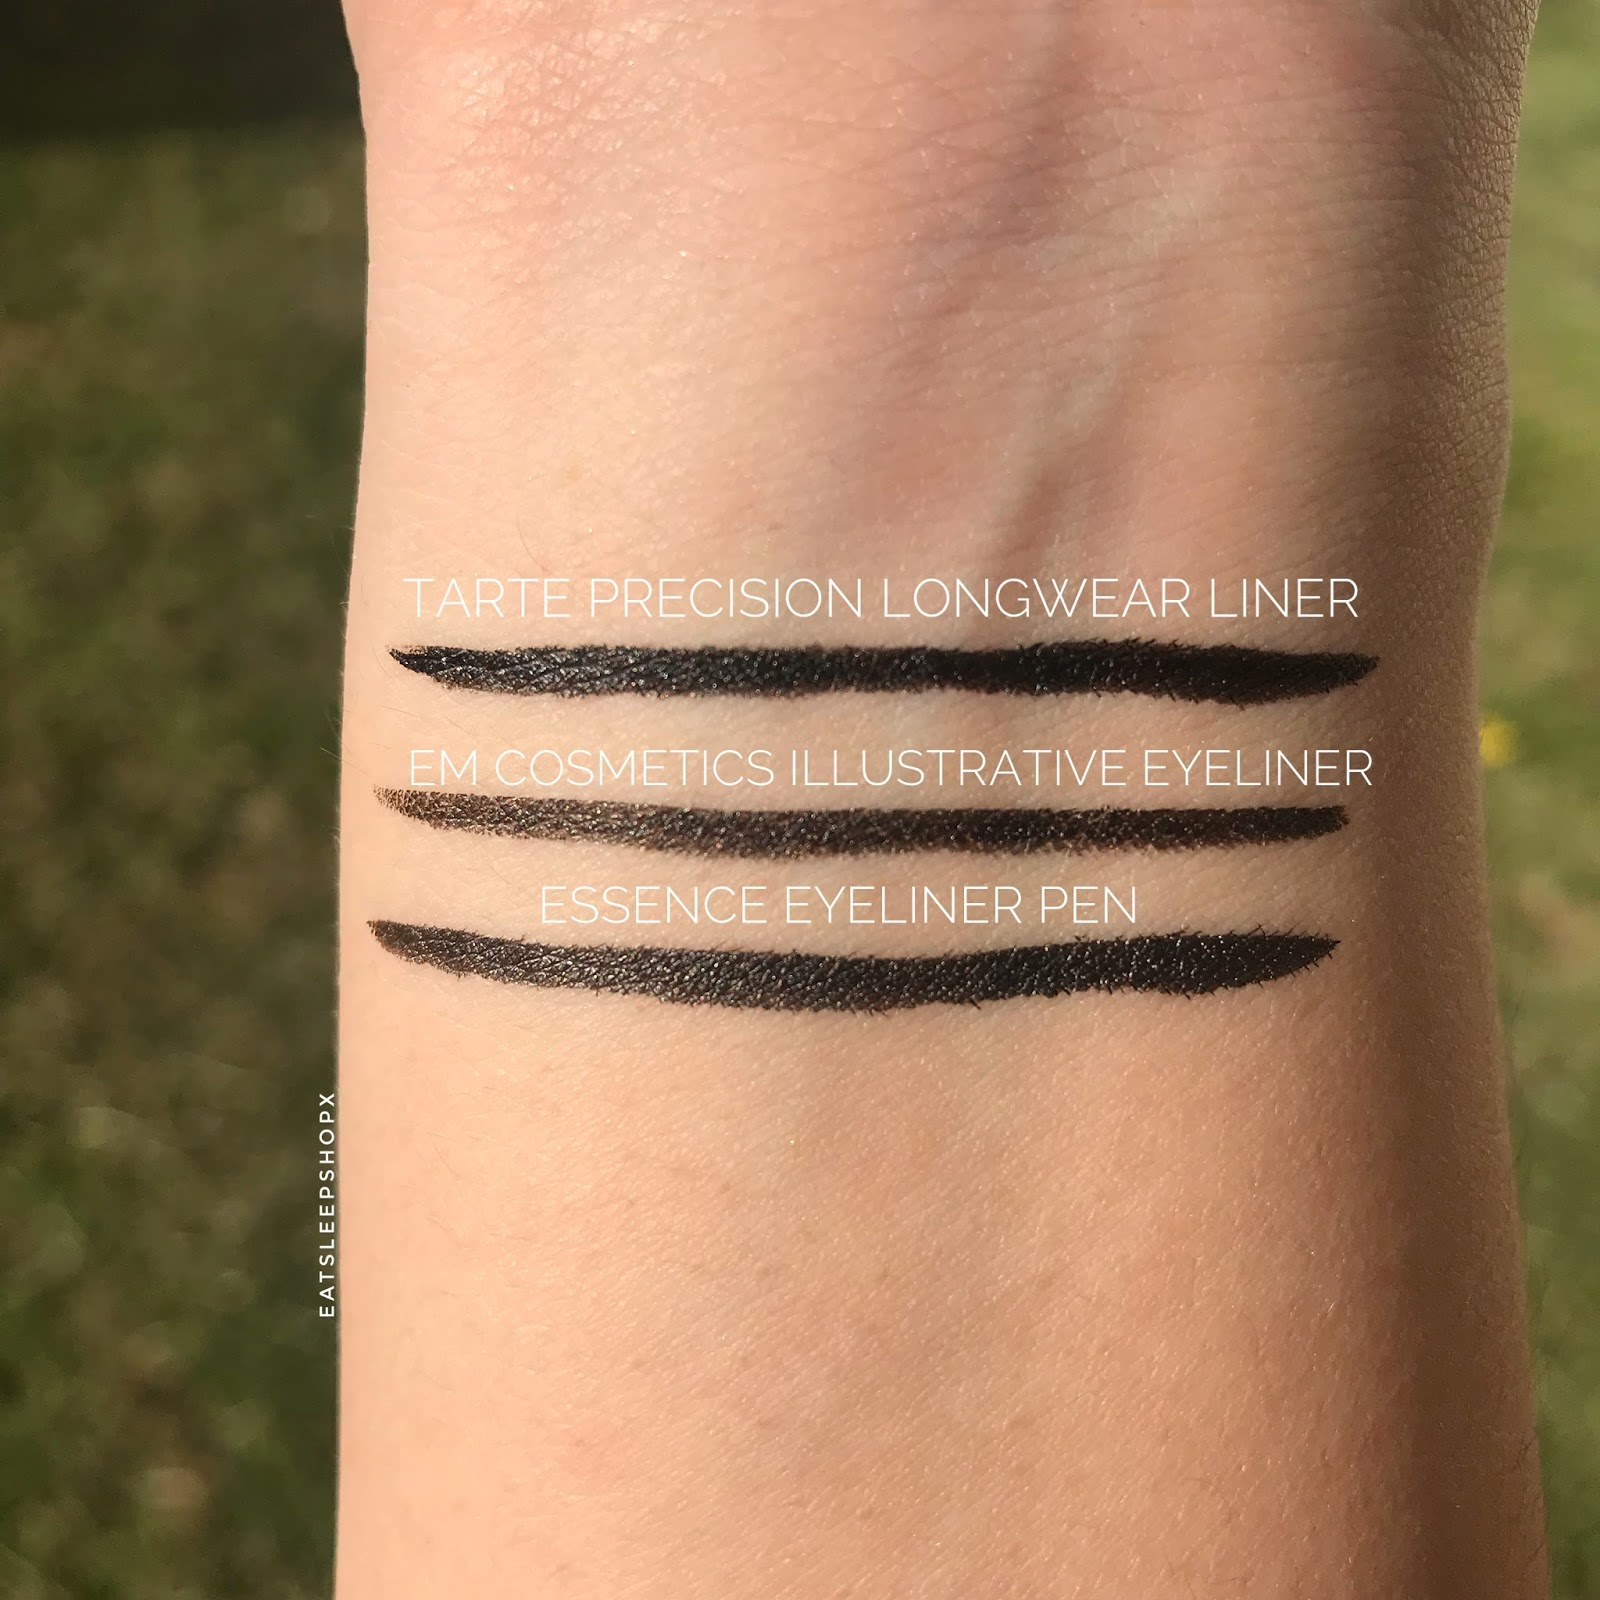 Illustrative Eyeliner